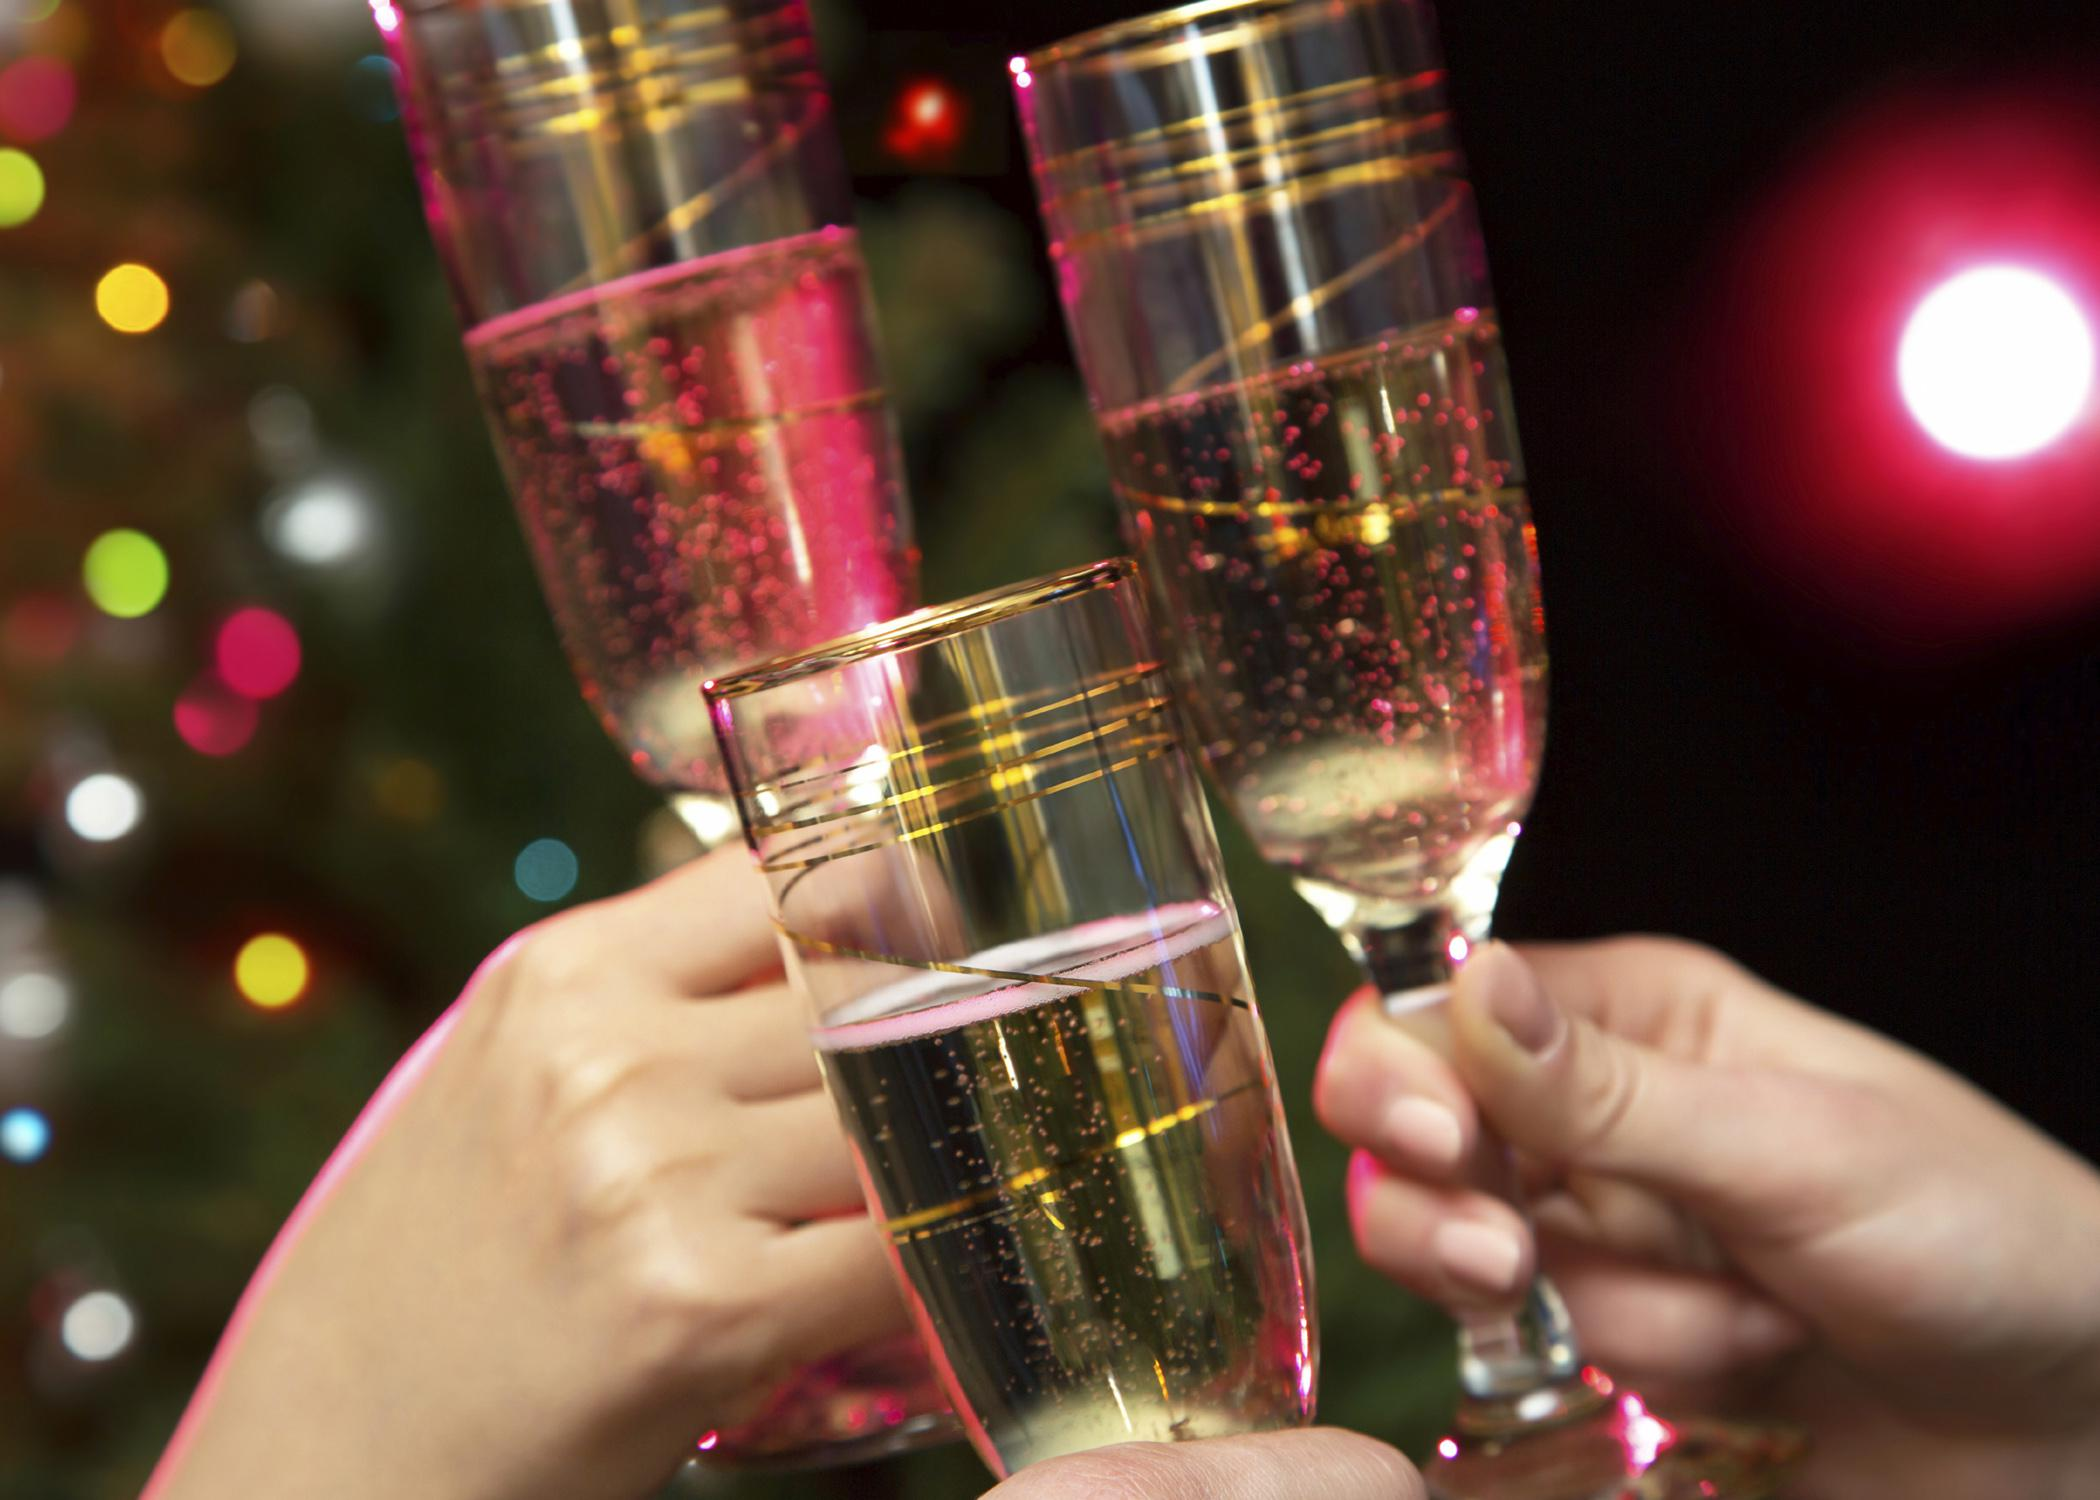 Holiday stress can trigger excessive drinking for alcoholics. Individuals in recovery from alcohol addiction should avoid gatherings with alcohol or make special arrangements if they must attend. (Photo from istockphoto/Chagin)